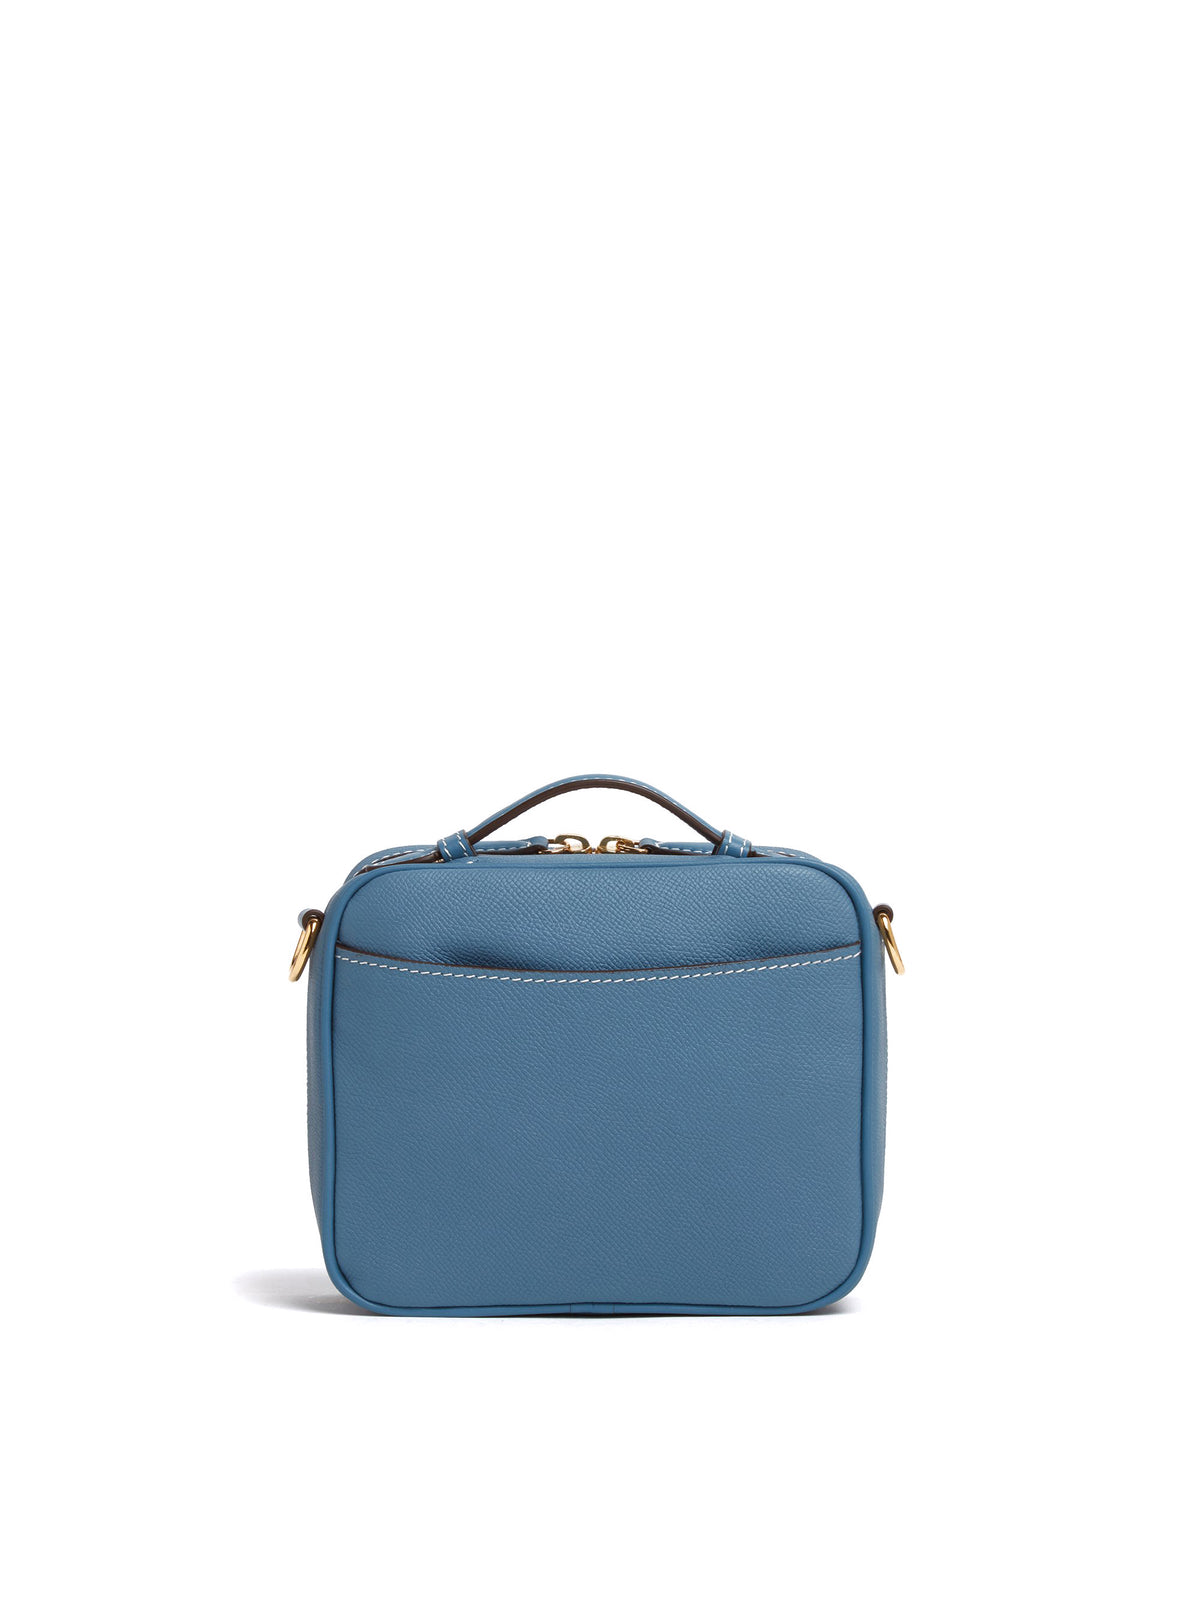 Madison Mini Leather Crossbody Bag